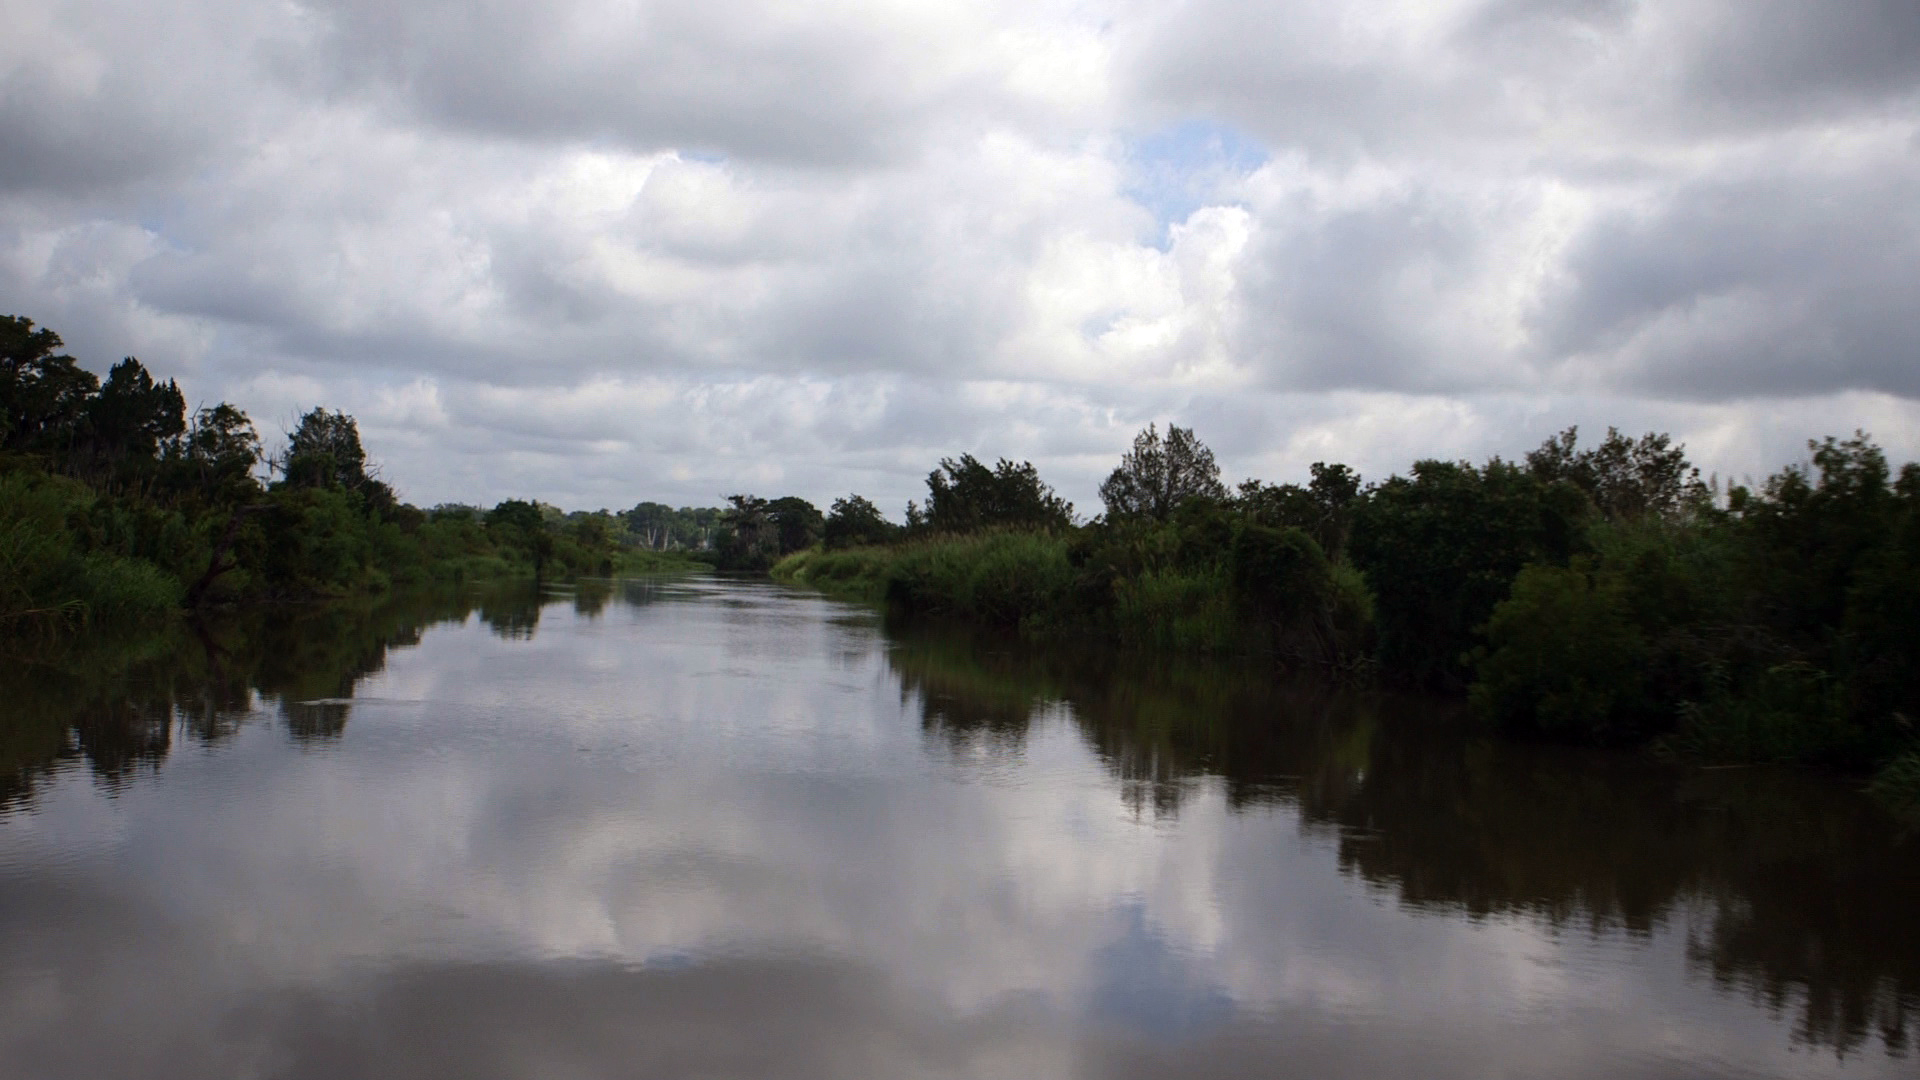 Altamaha river. Photo by Mike Fritz